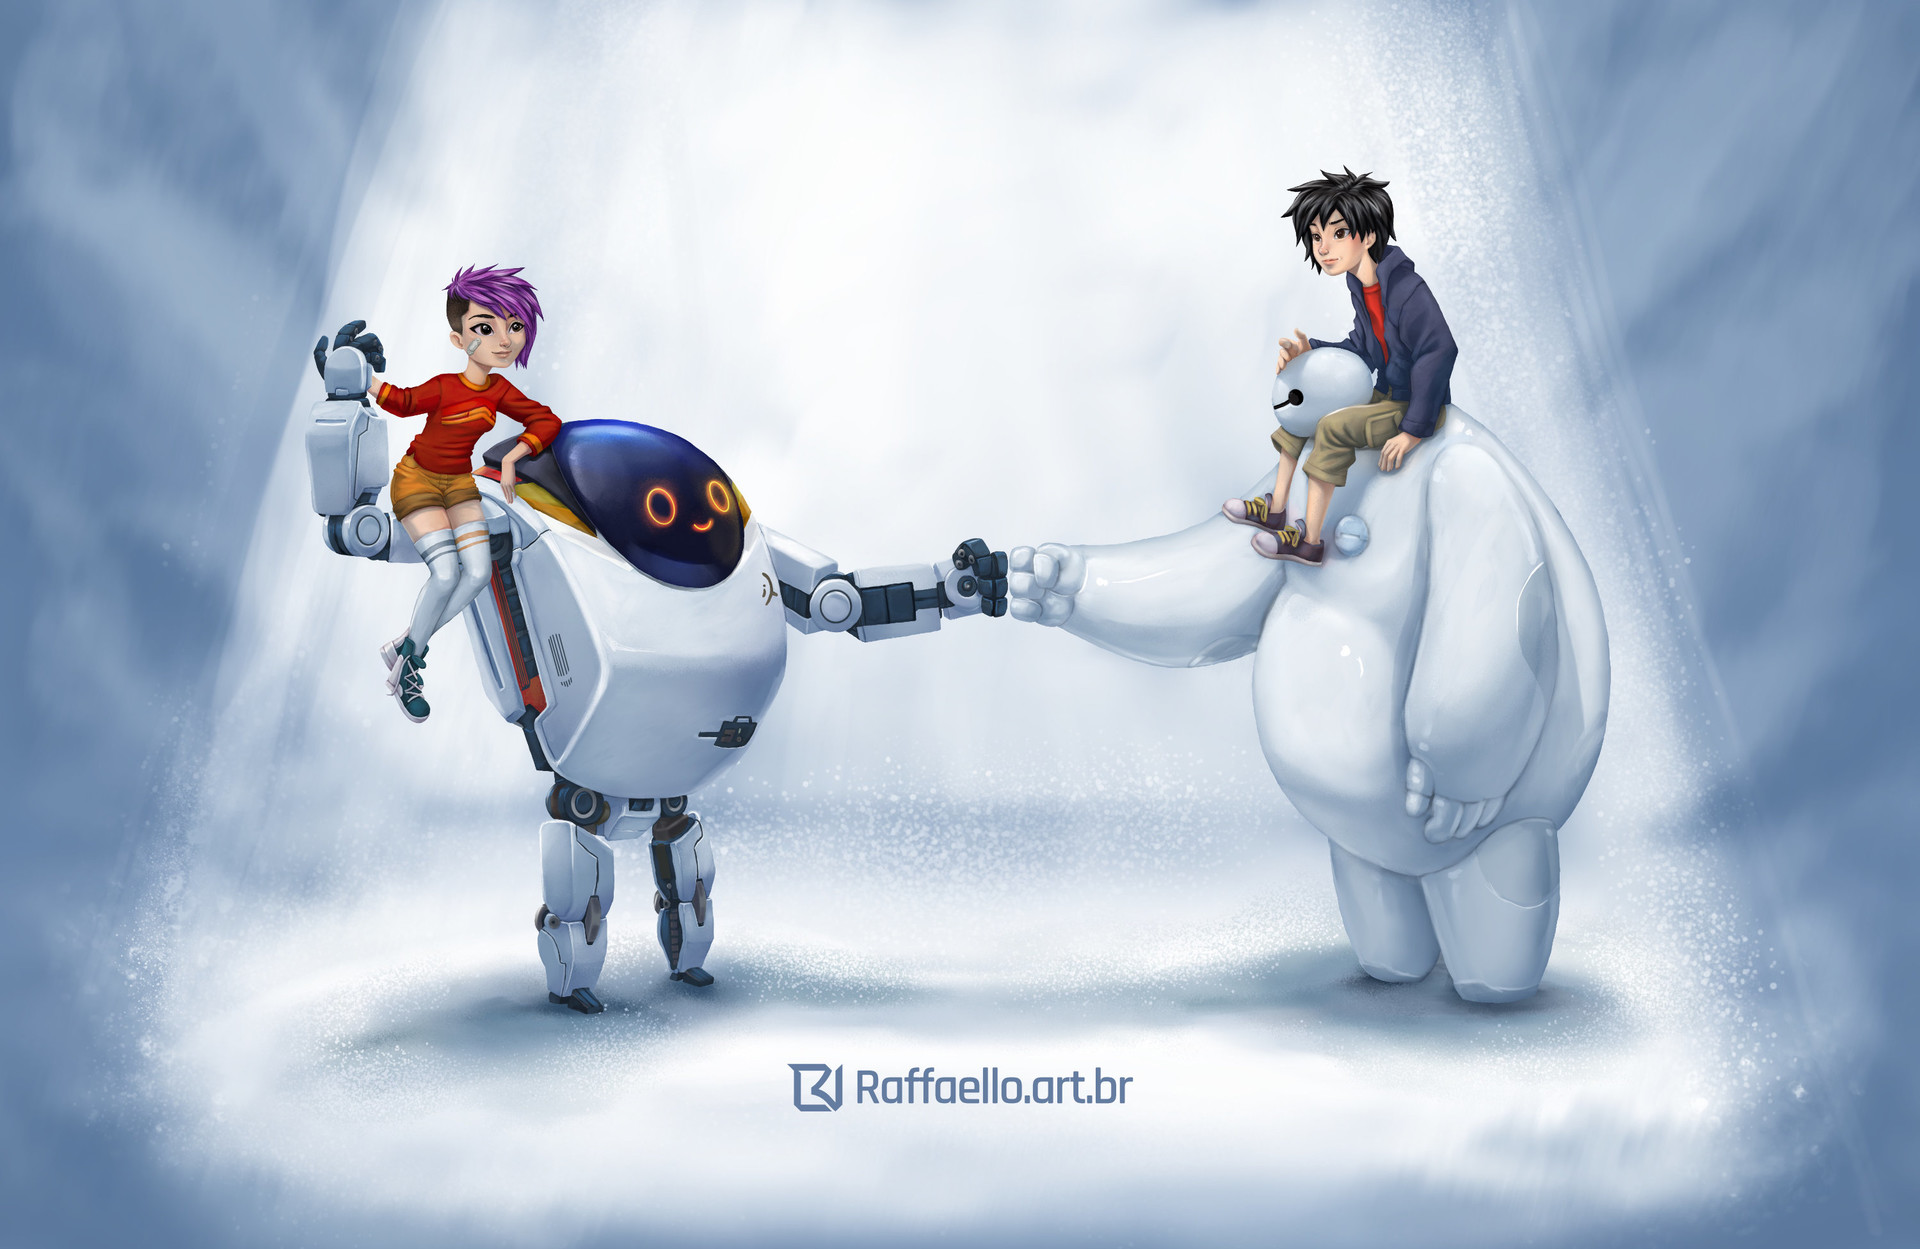 NextGen and Big Hero 6